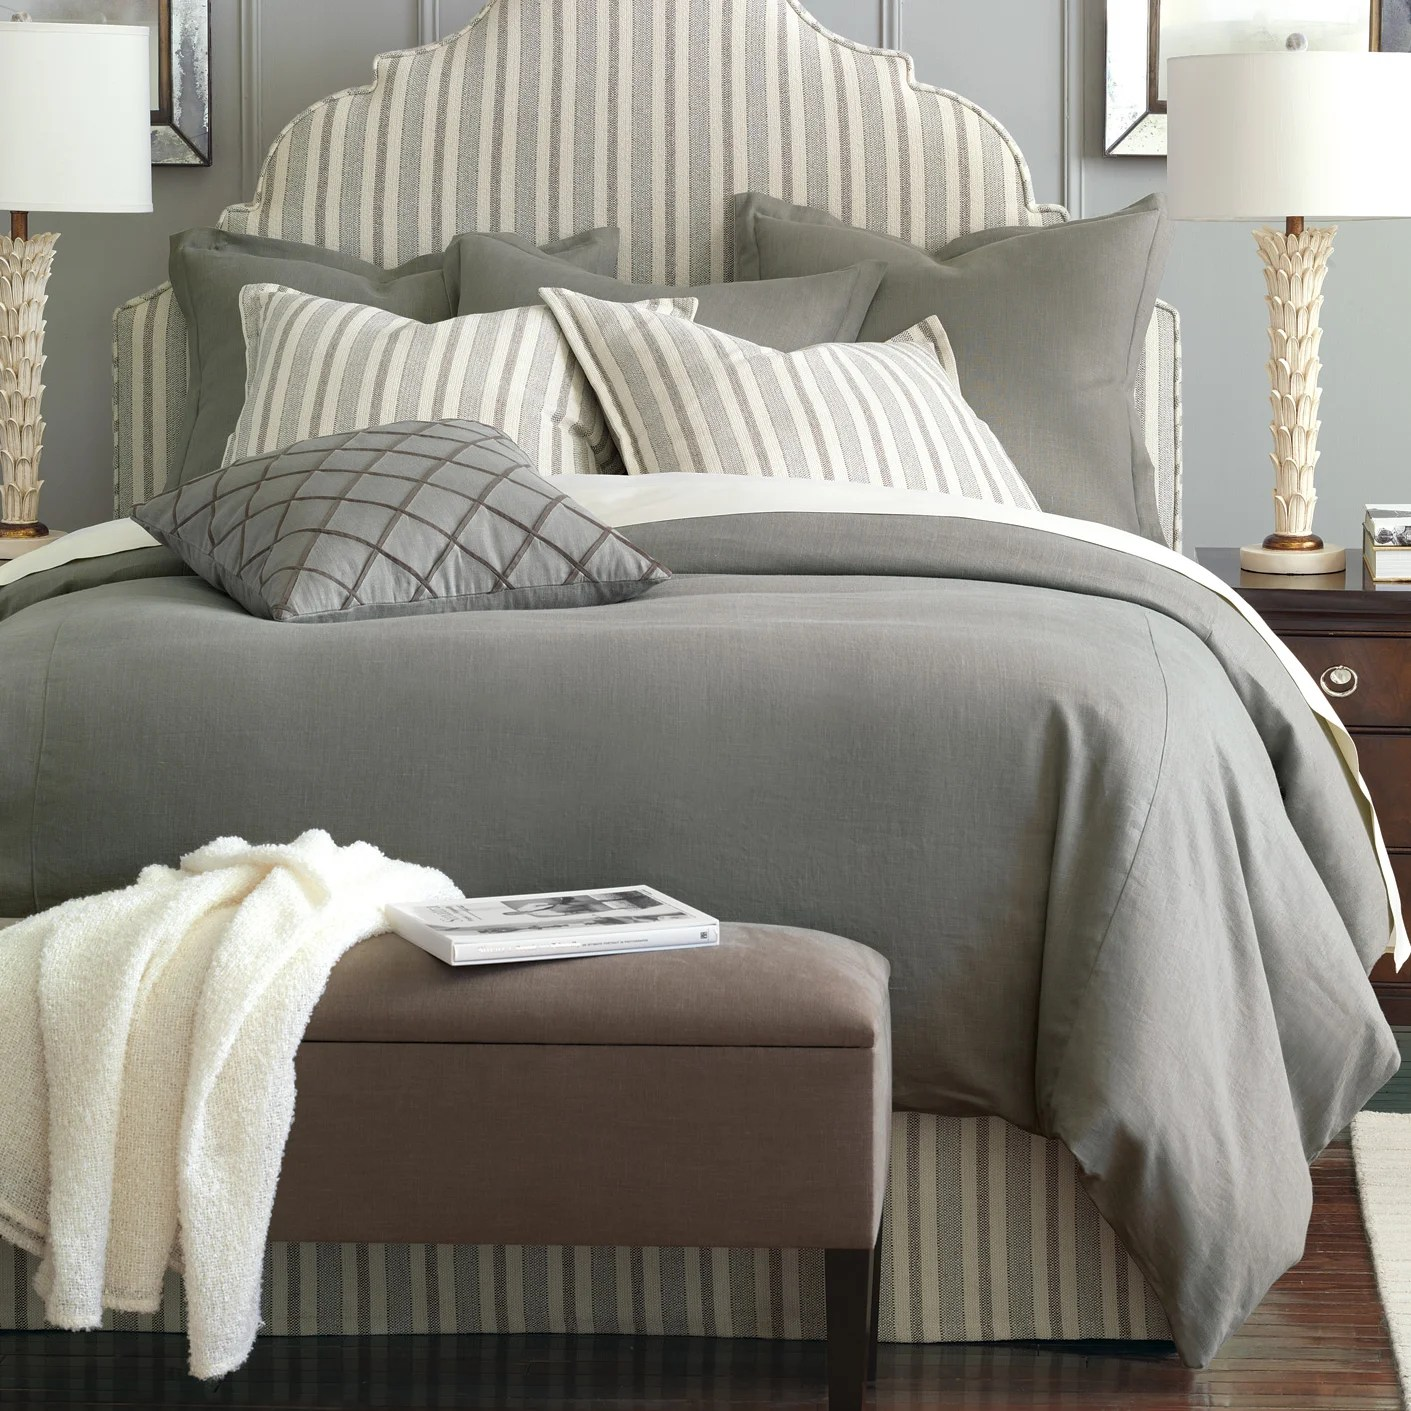 Linen Bedding Reviews Eastern Accents Breeze Pure Linen Comforter Collection